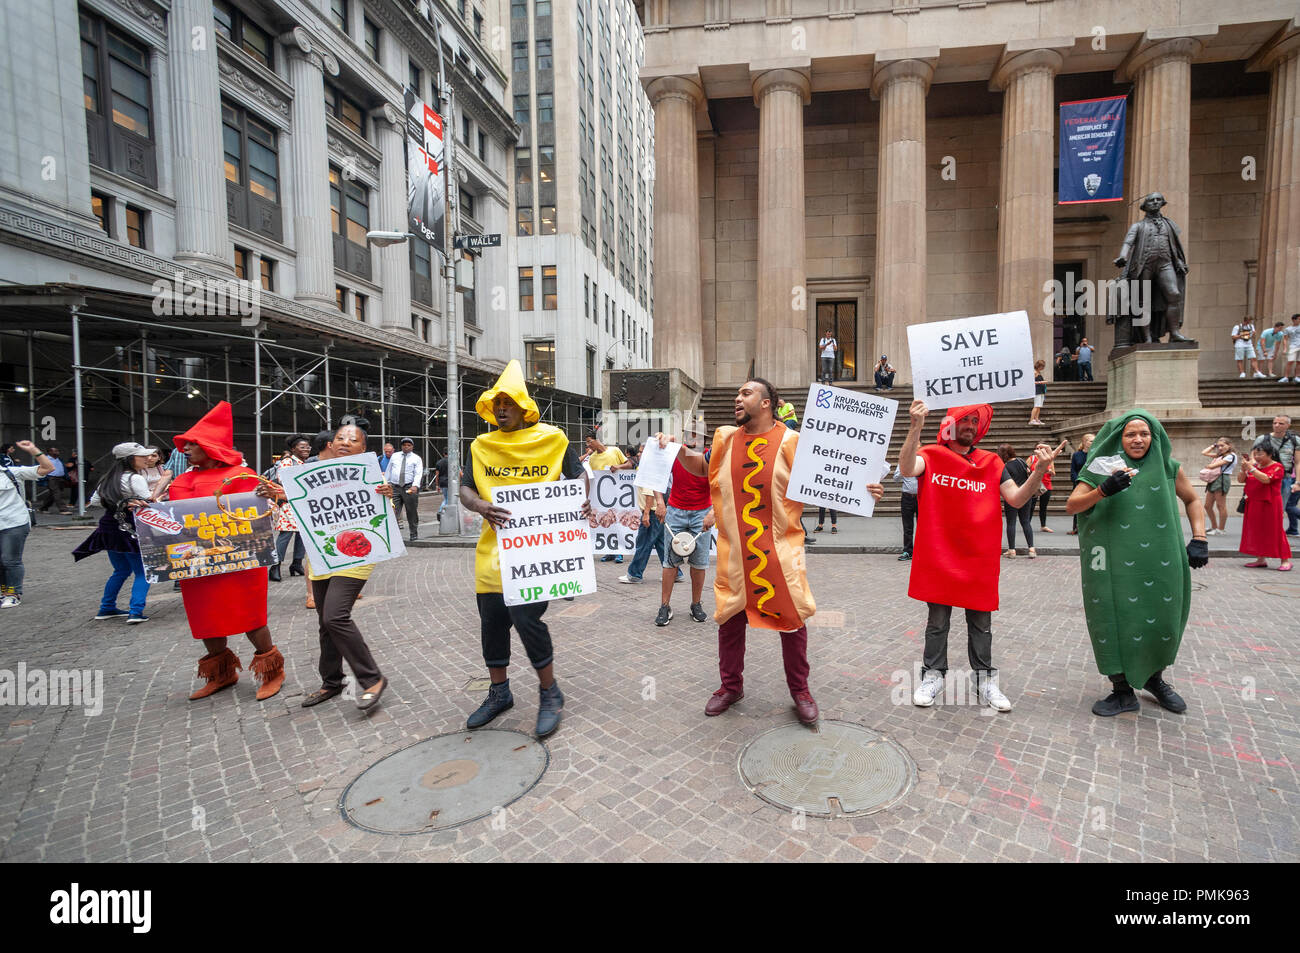 Protesters from Krupa Global Investments dressed as iconic ketchup and mustard bottles protest on Wednesday, September 12, 2018 the management of the Kraft Heinz Company by Berkshire Hathaway and 3G Capital, fearful that the investors are abandoning the company. Krupa wants the company, which has seen its share price drop, to take a number of steps to ensure a fair return to investors even if Kraft Heinz has to be taken private. KGI owns approximately $100 million of Kraft Heinz stock. (© Richard B. Levine) - Stock Image